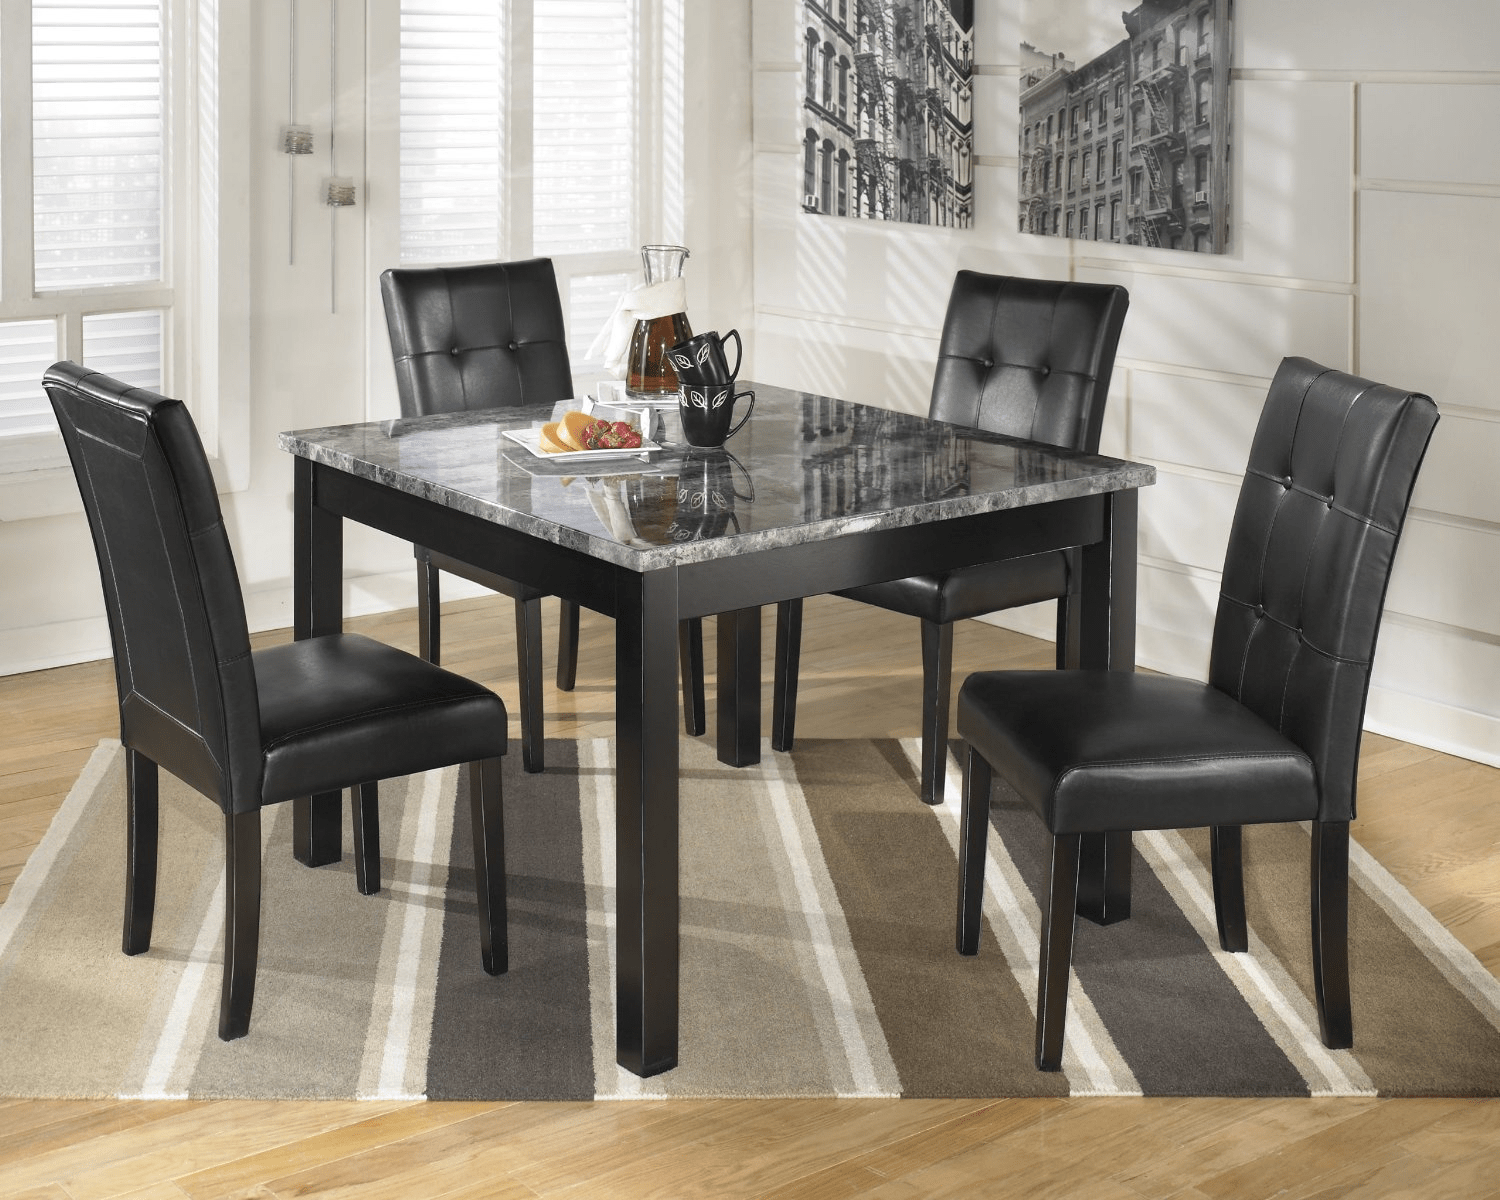 Wooden Chair Designs For Dining Table